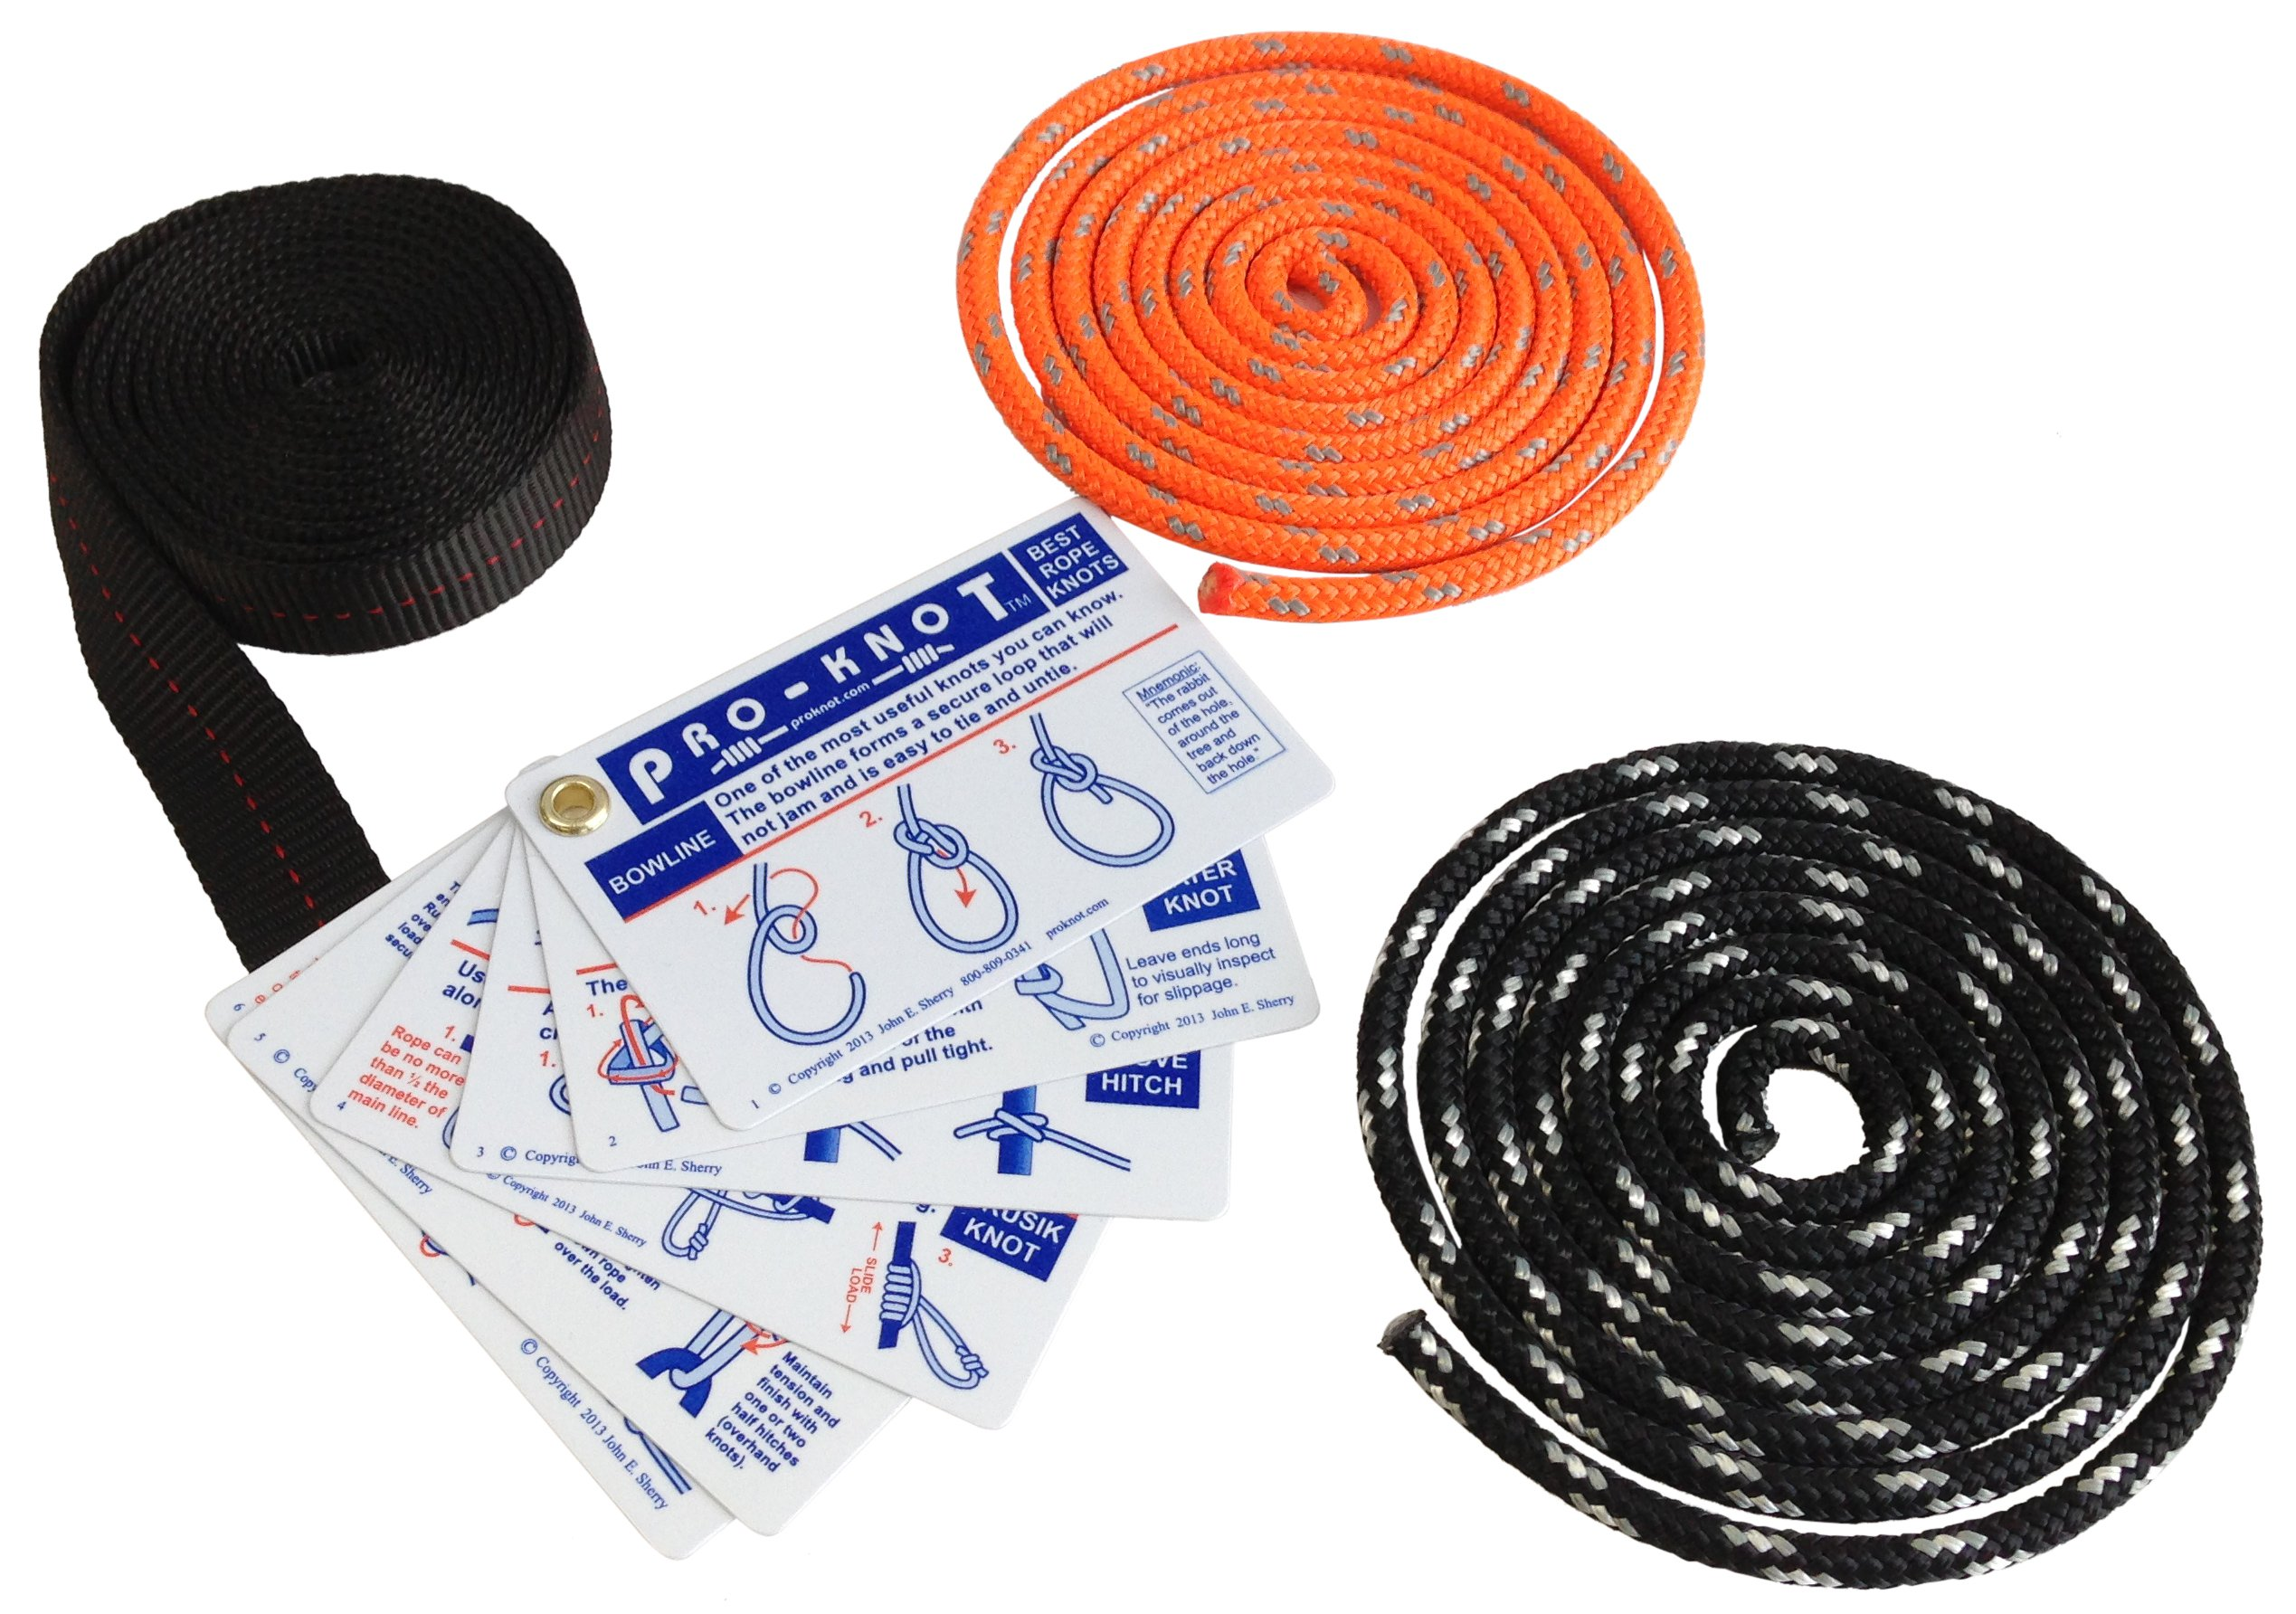 SGT KNOTS Knot Tying Kit - Learn How to Tie Knots Instruction Cards (17) Two (2) 6 feet Lengths of Double Braided Rope, and One (1) 6 Foot Length of Nylon Webbing - Guide to Essential Knots by SGT KNOTS